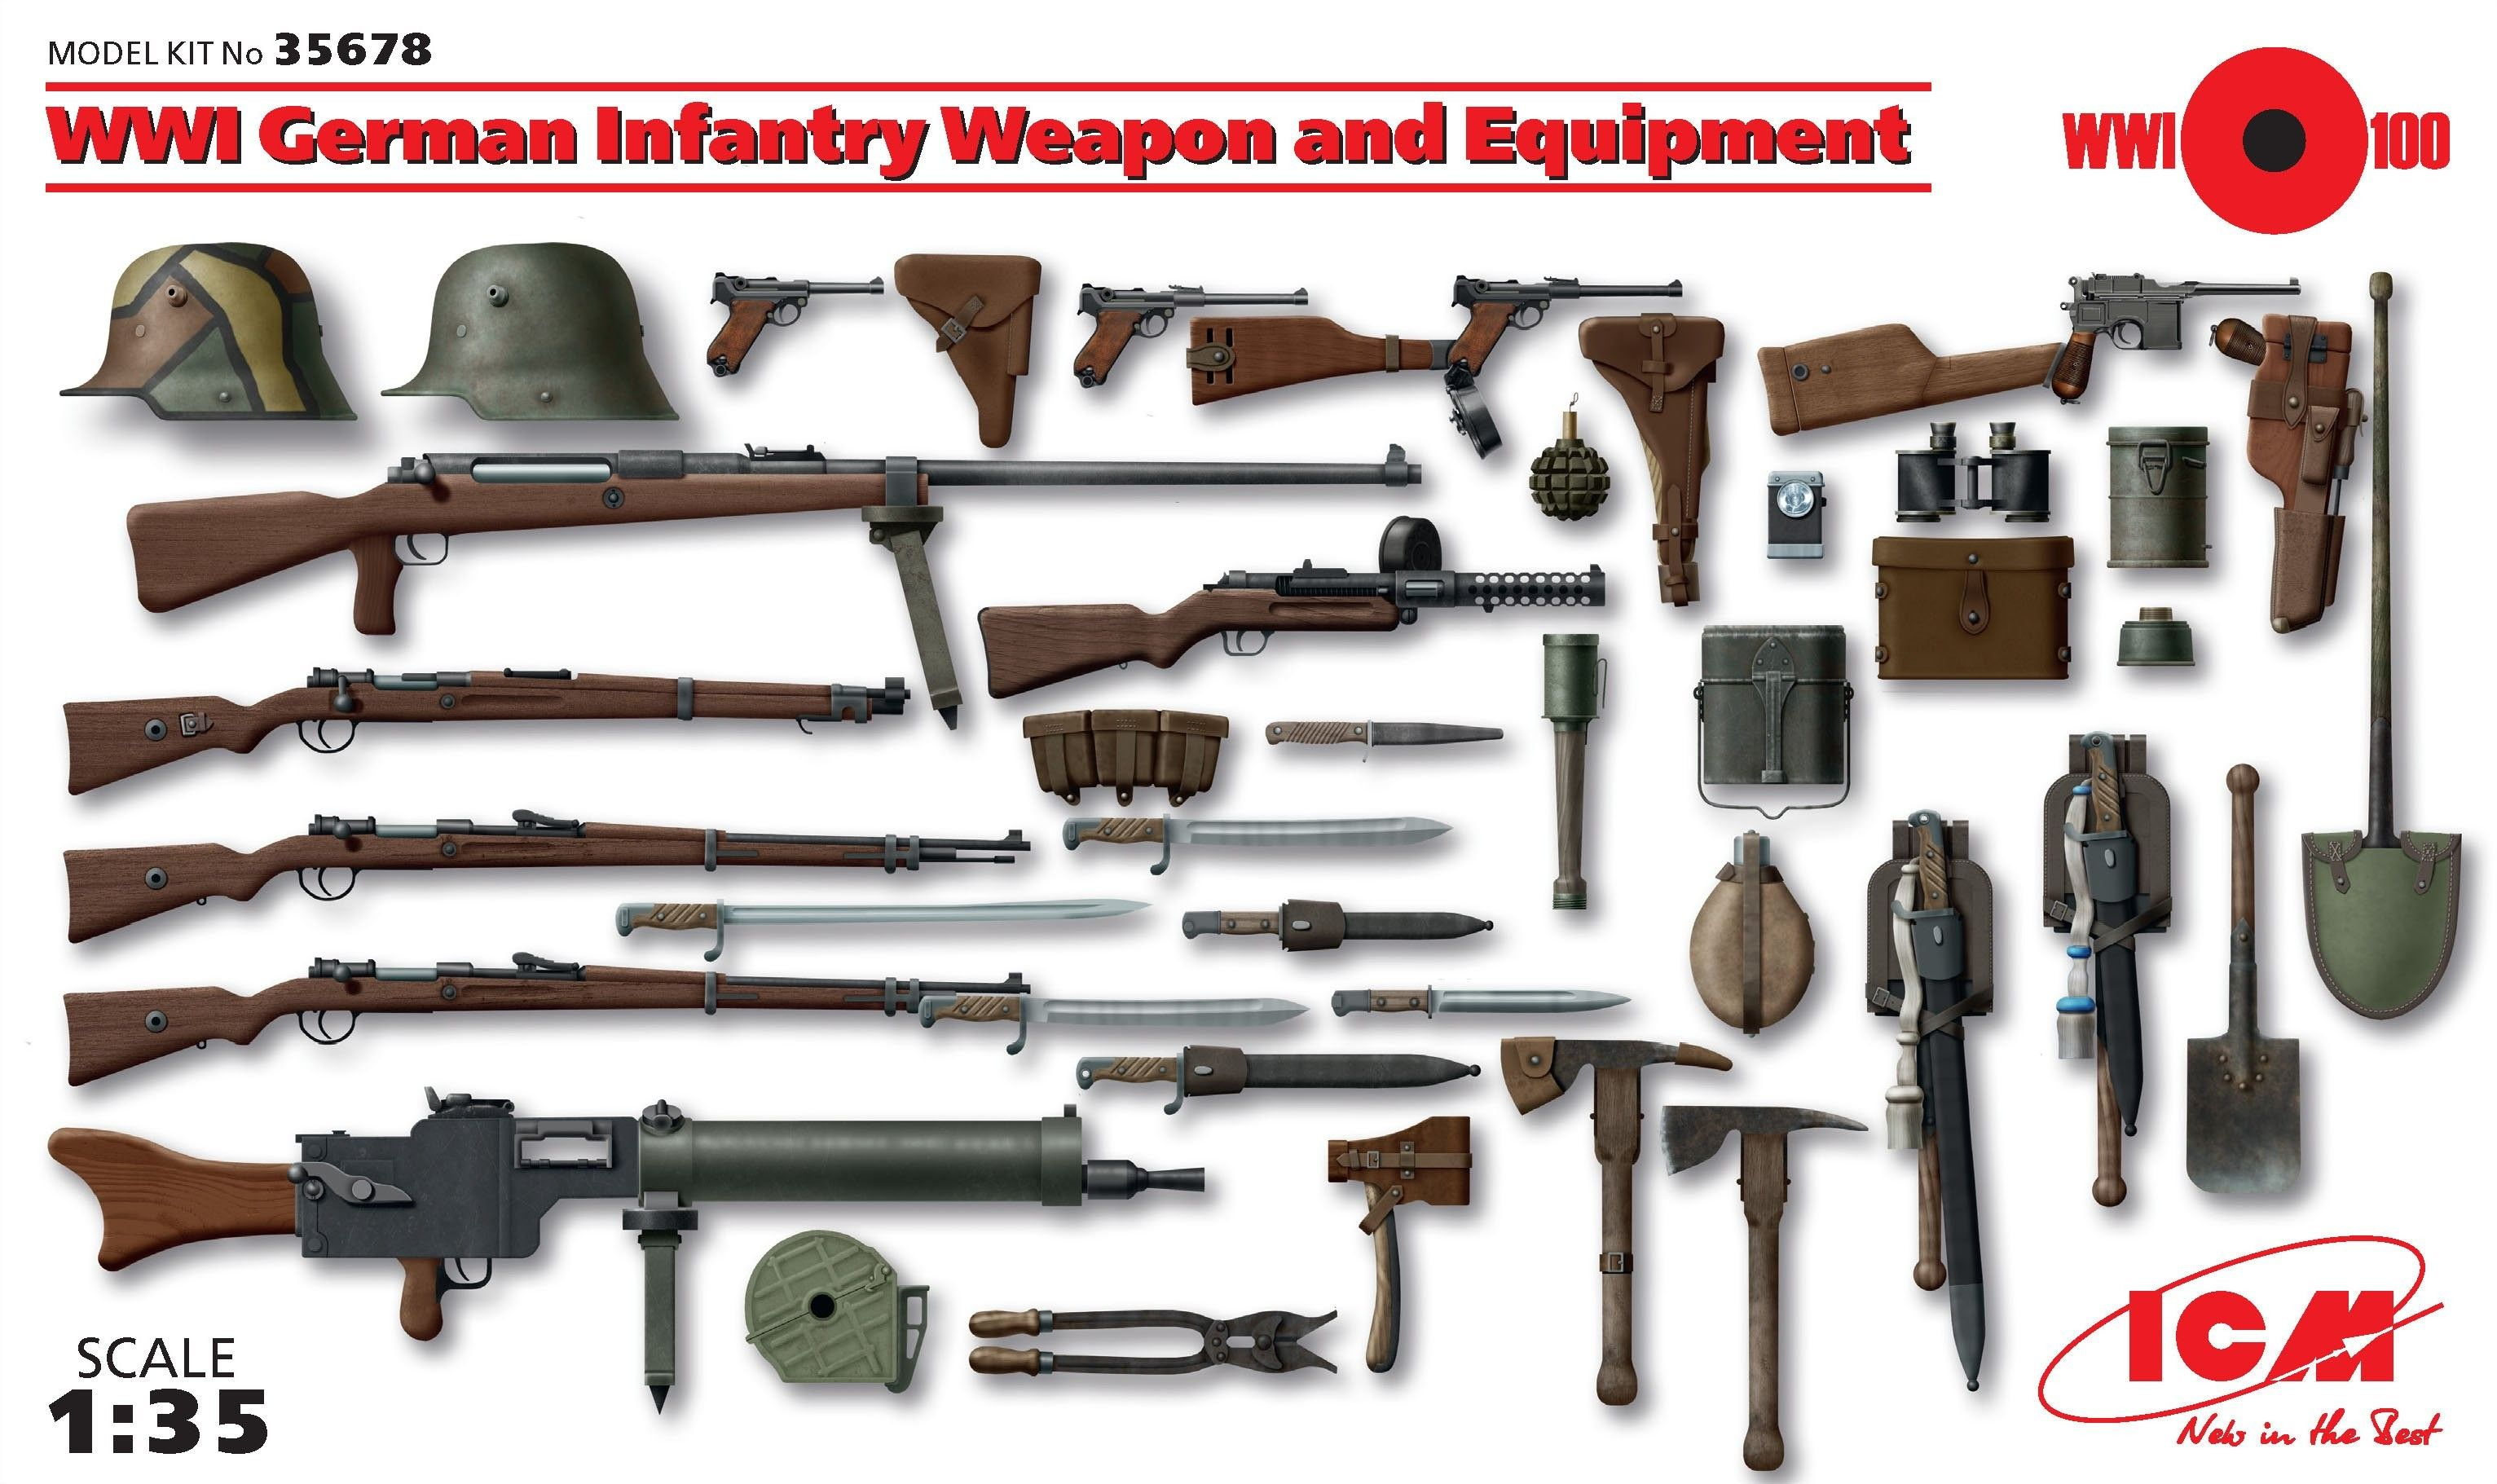 1:35 WWI German Infantry Weapon and Equipment - Figures ...